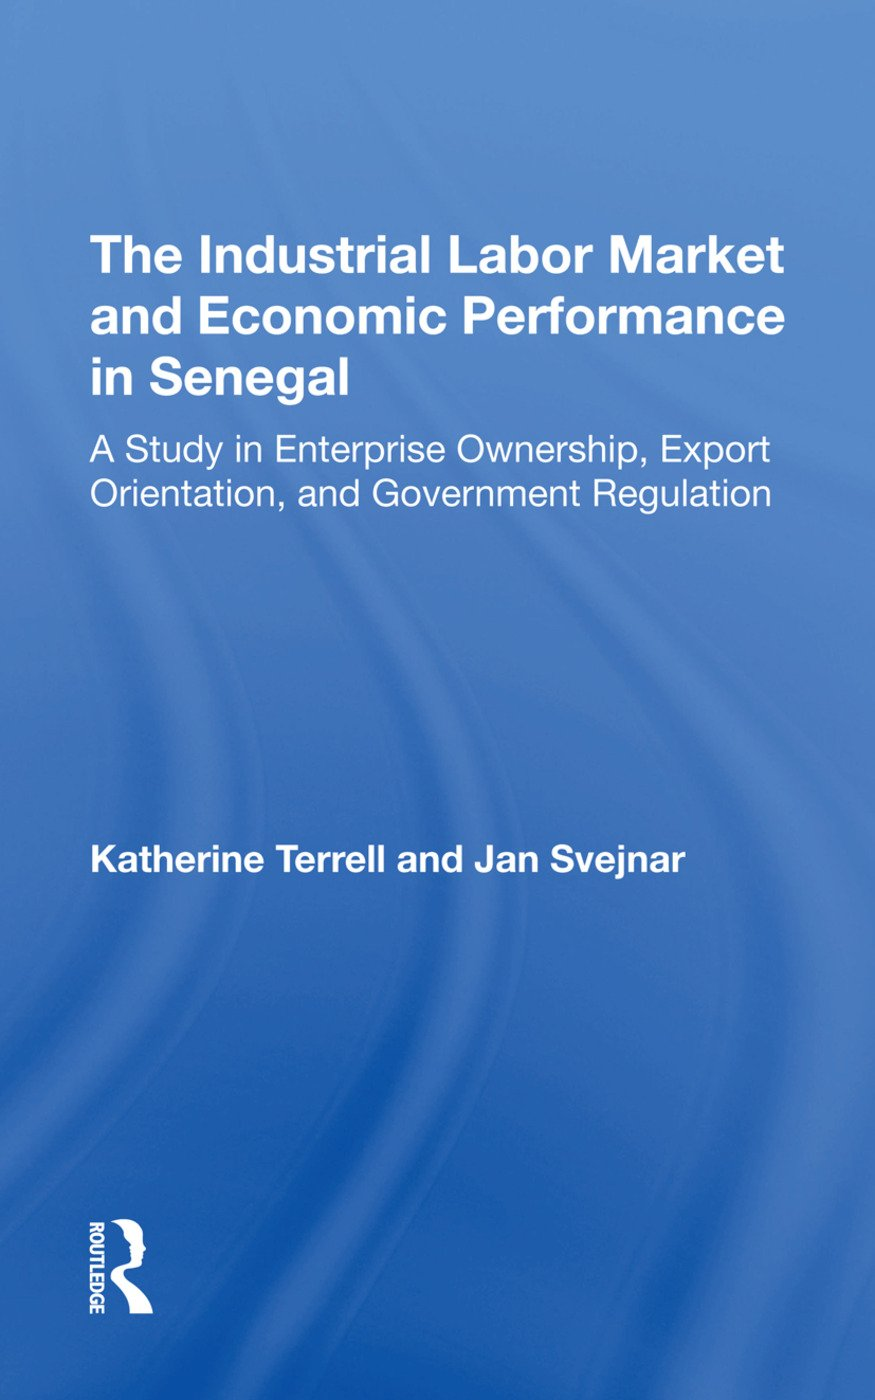 The Industrial Labor Market And Economic Performance In Senegal: A Study In Enterprise Ownership, Export Orientation, And Government Regulations book cover